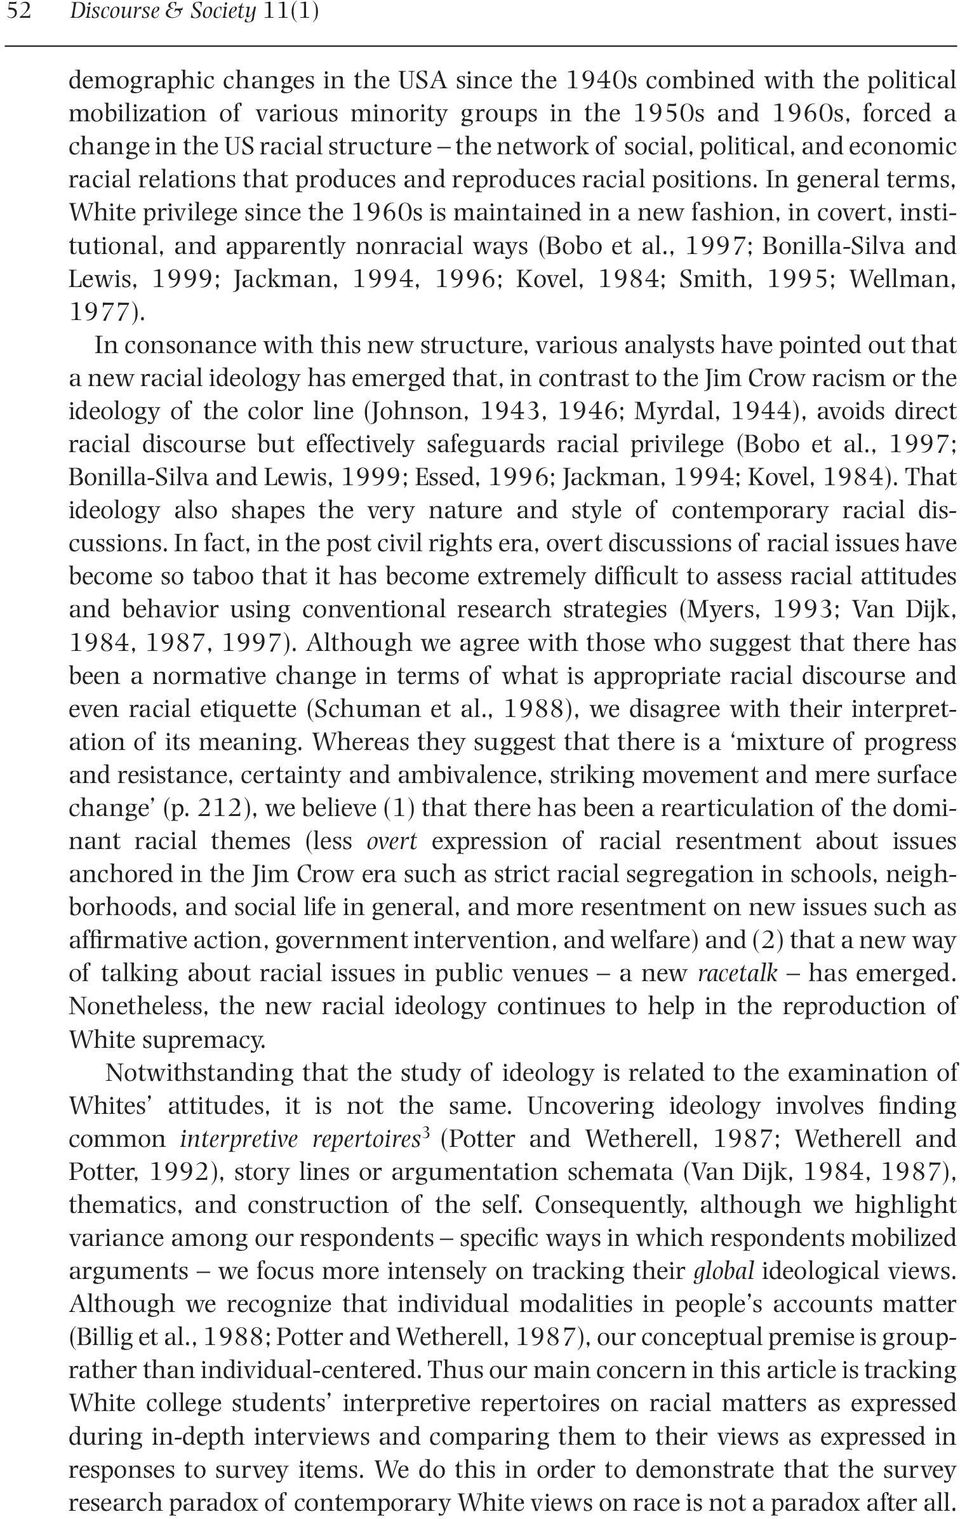 In general terms, White privilege since the 1960s is maintained in a new fashion, in covert, institutional, and apparently nonracial ways (Bobo et al.